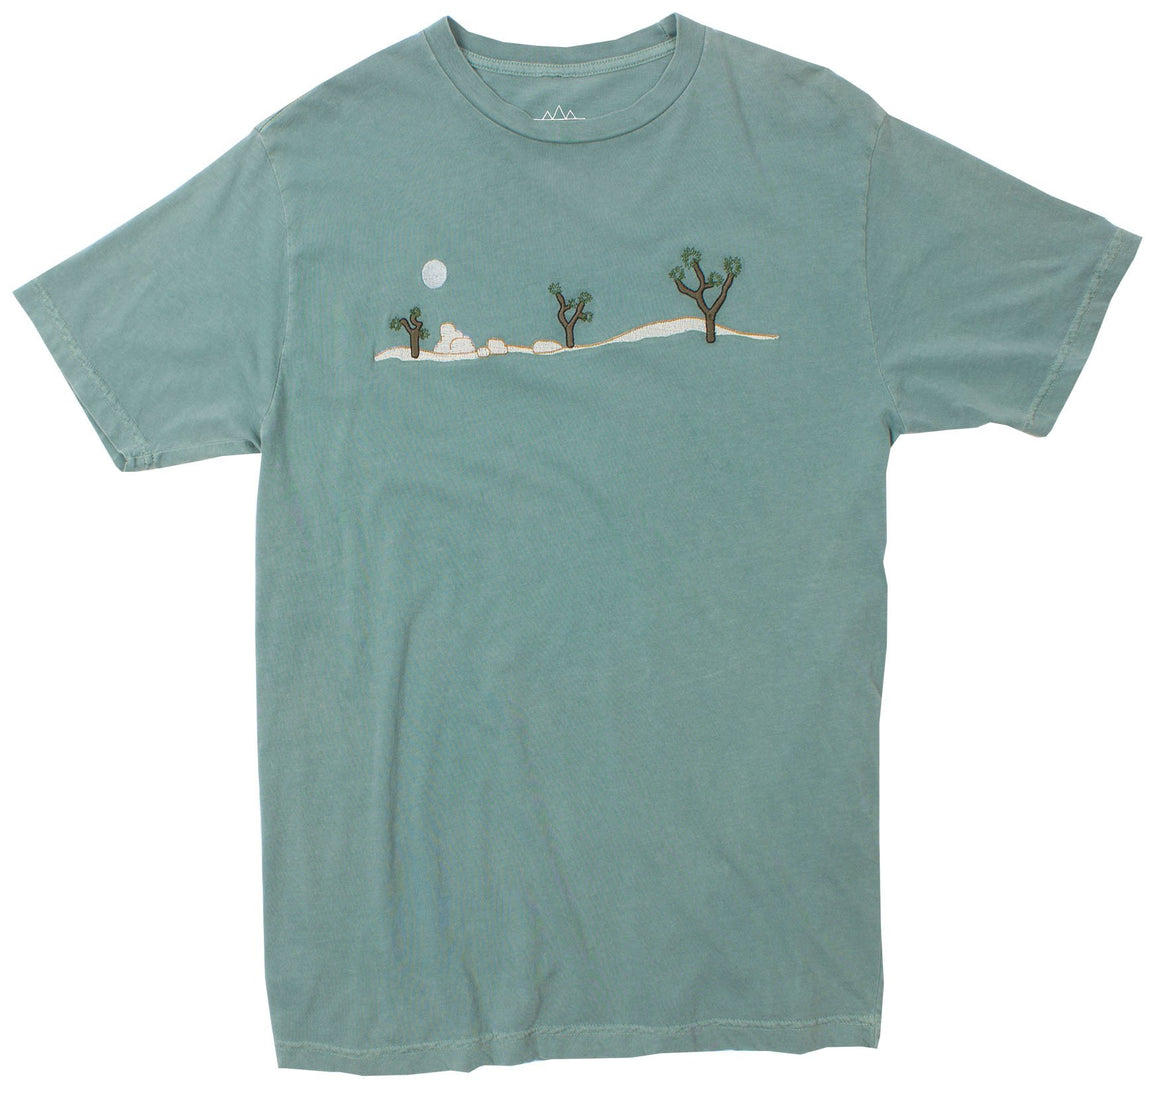 Joshua Tree Embroidery Tee by Altru Apparel